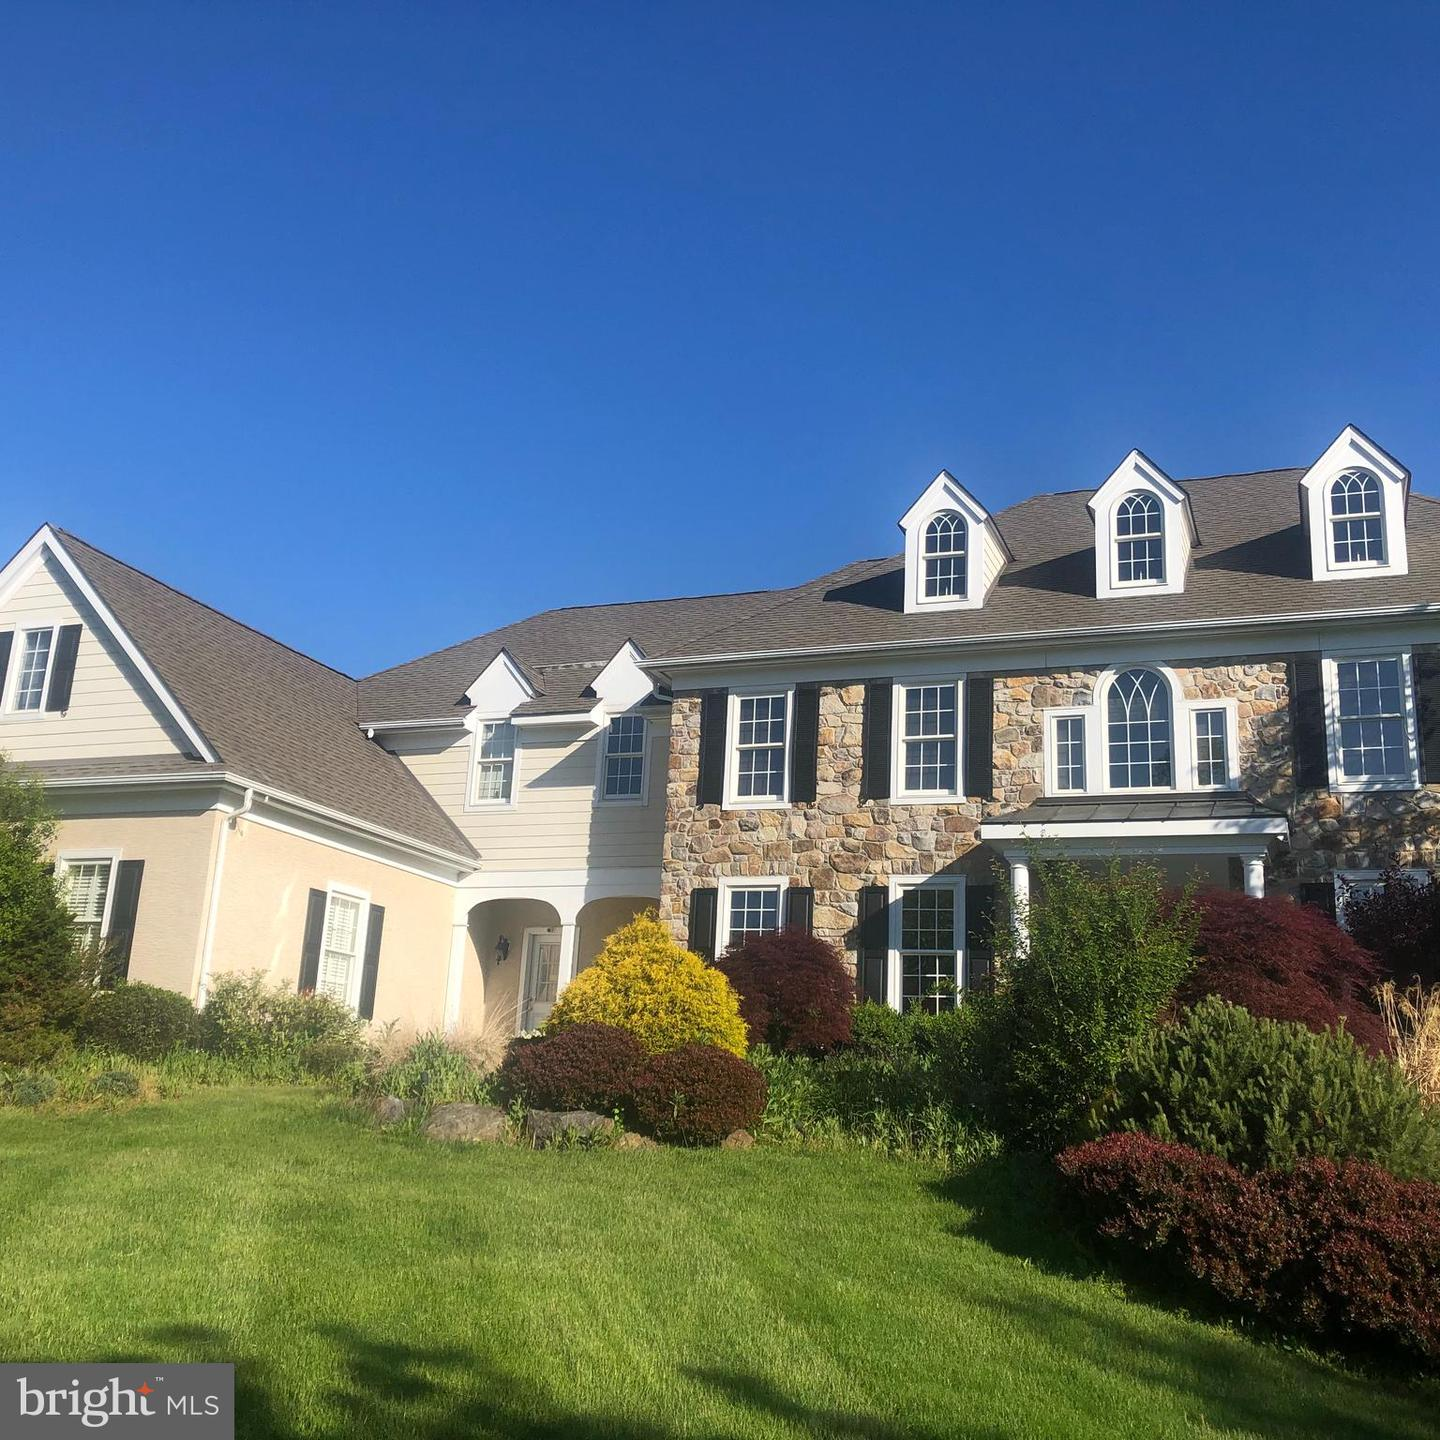 1012 Brick House Farm Lane Newtown Square, PA 19073